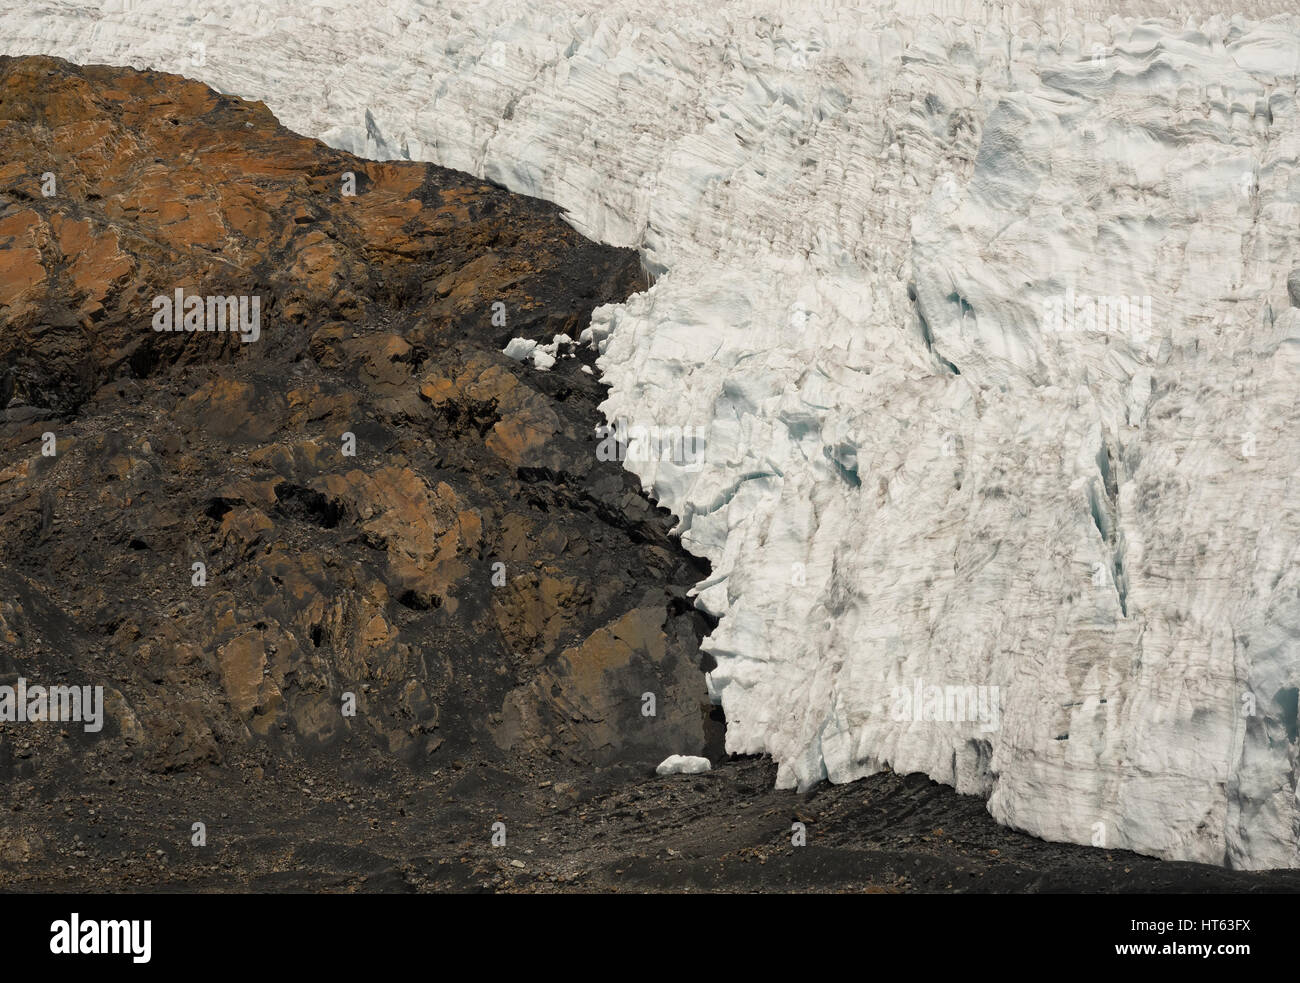 The border between the ice of a shrinking glacier and the rock of a mountain, symbolizing climate change and global - Stock Image